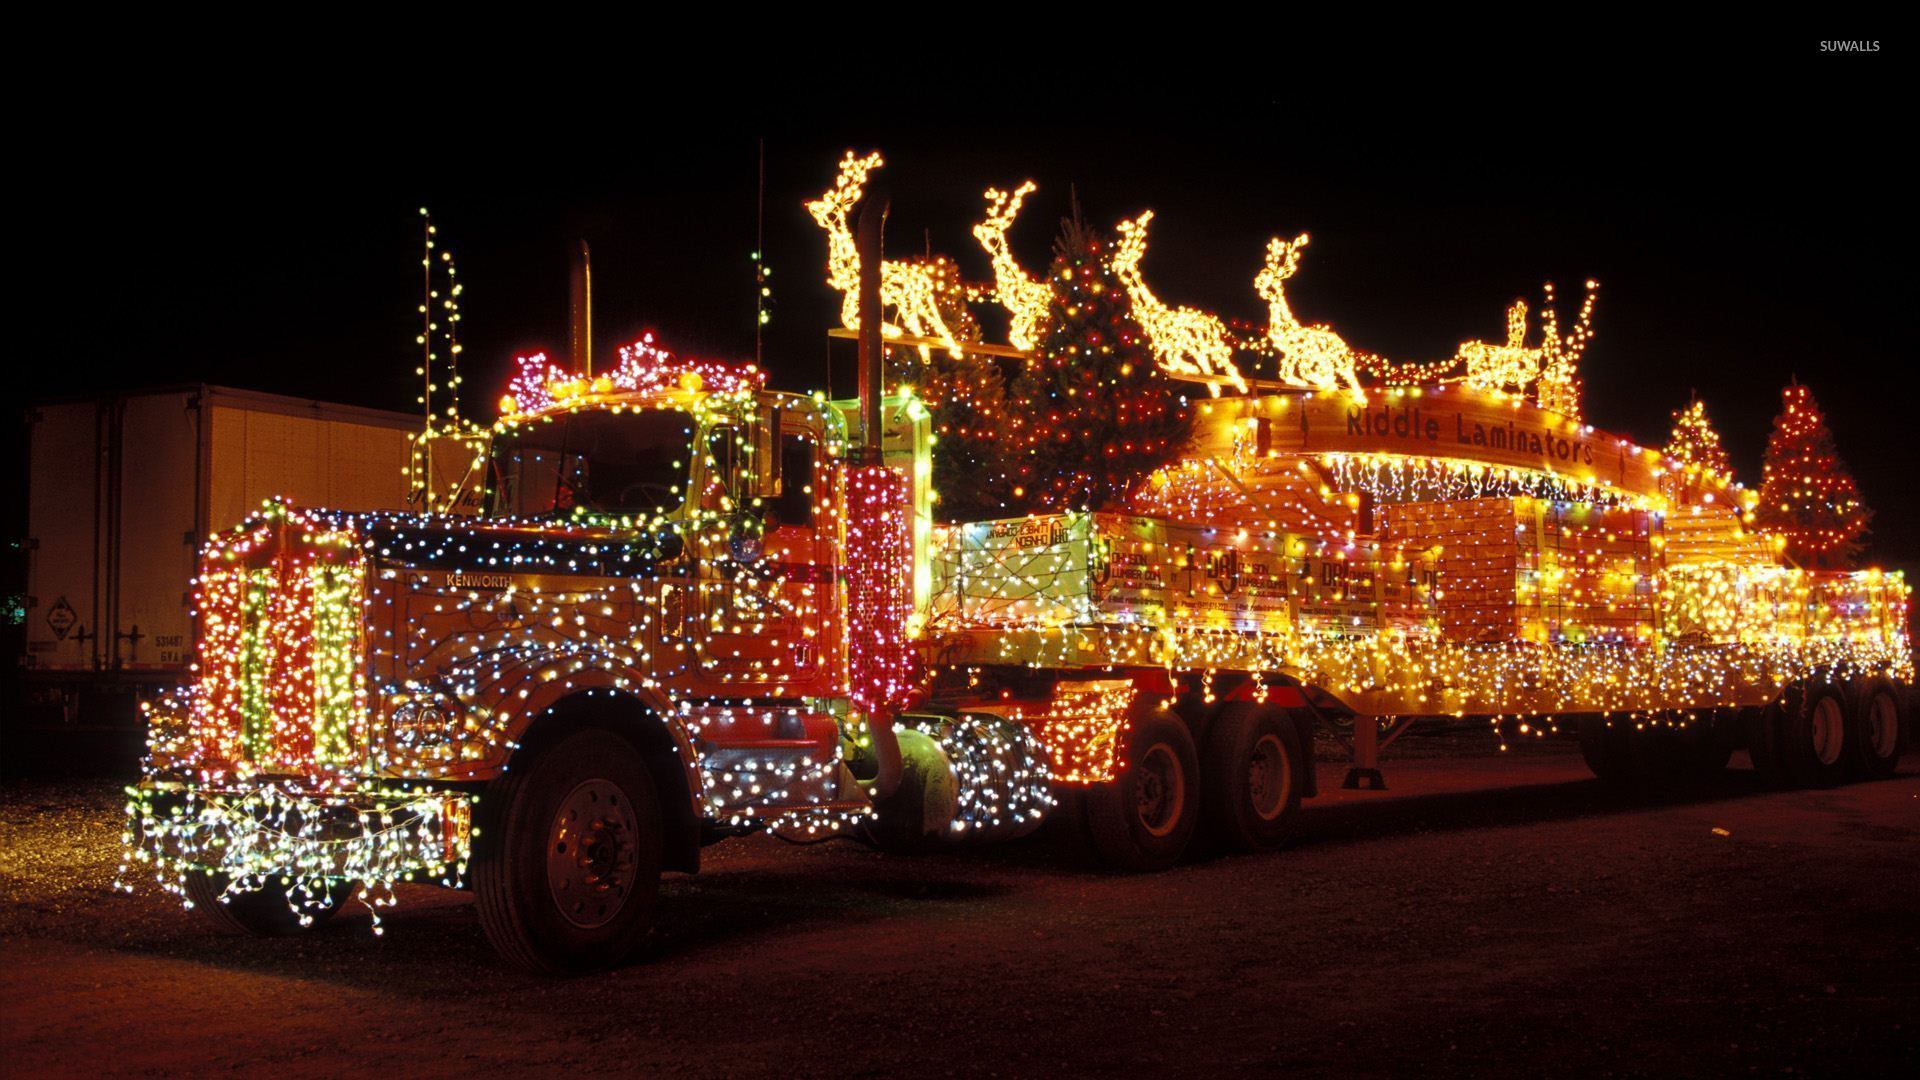 Truck With Christmas Lights Wallpaper Holiday Wallpapers